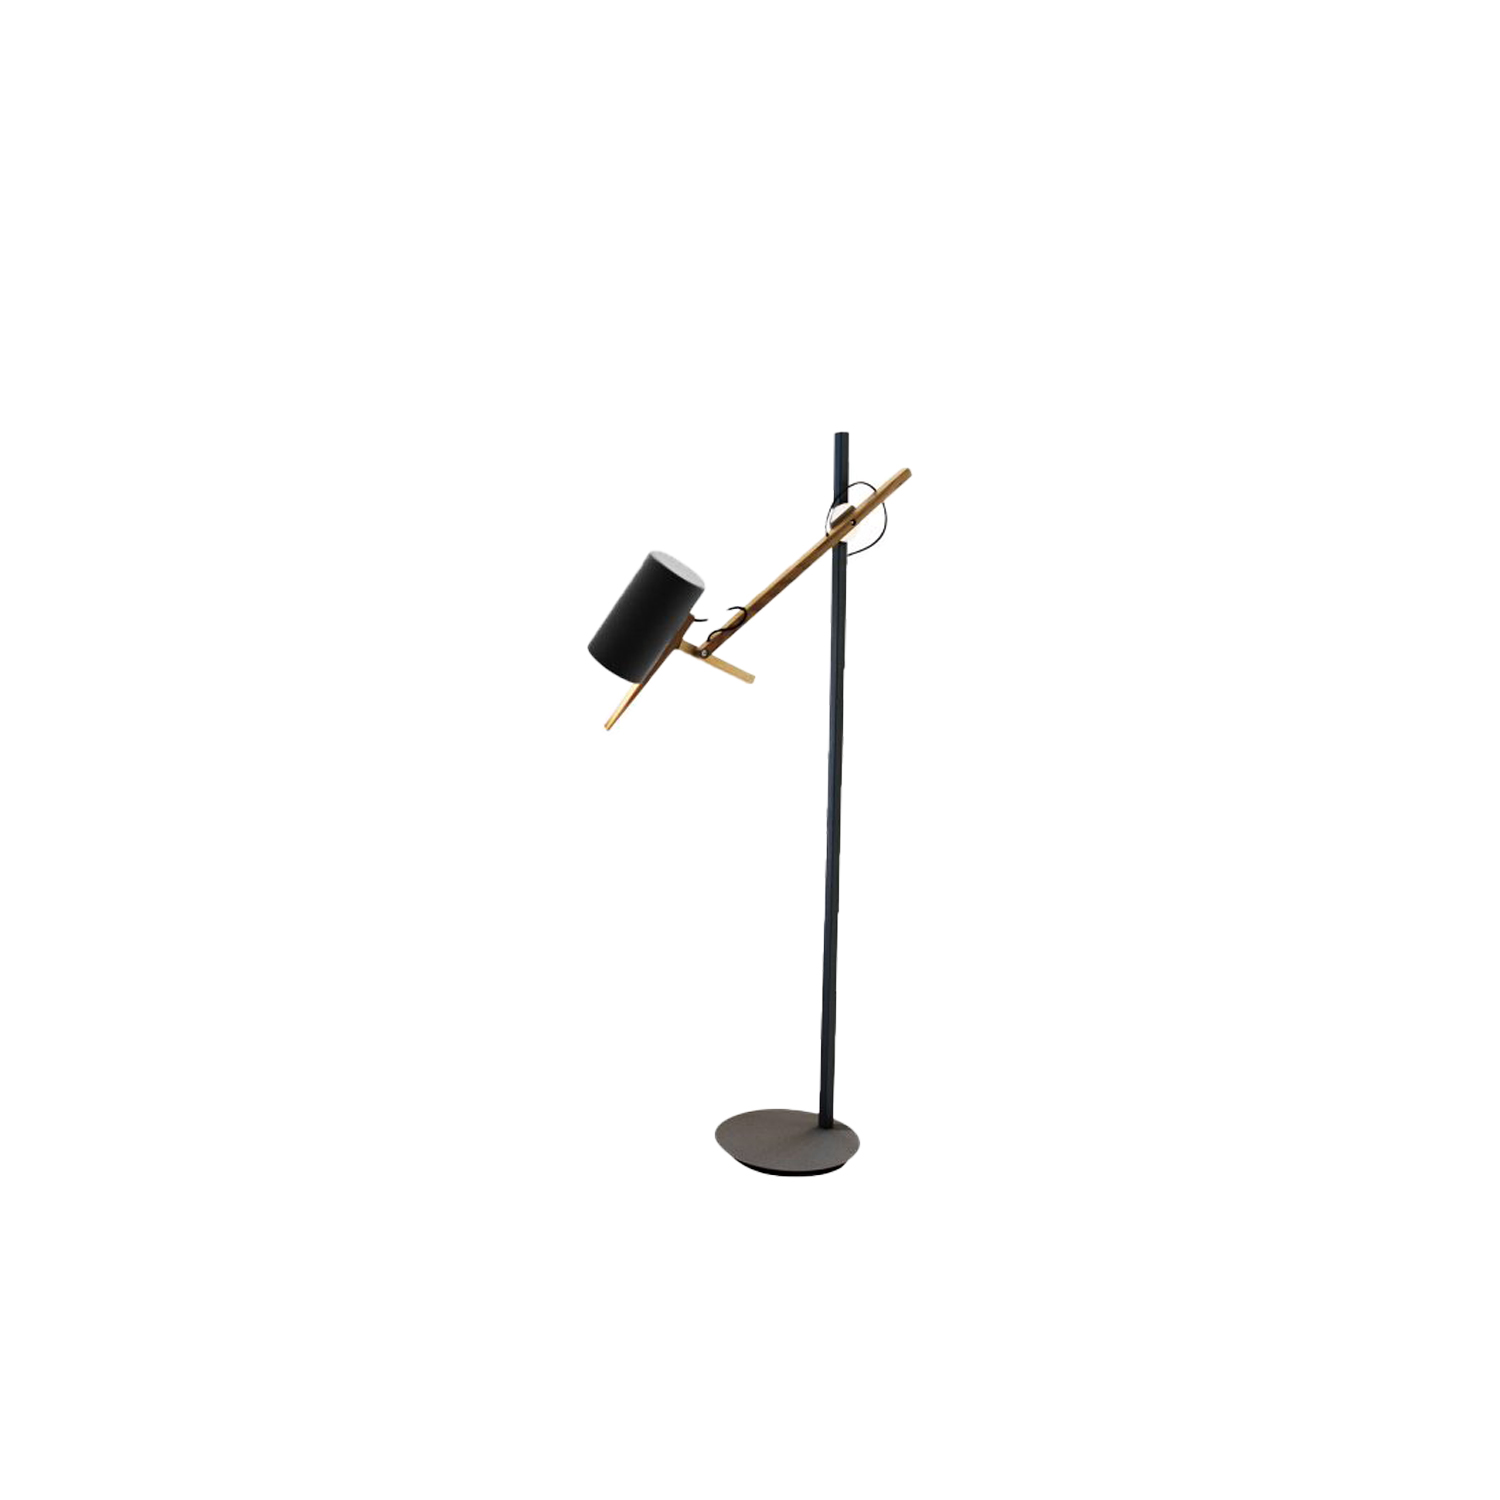 Scantling Large Floor Lamp - A combination of basic geometric shapes and the use of wood together with metal give this range of lamps a homely appearance, at the same time as a clearly defined personality.  All of the movements of the fully rotating shade use arms and hinges, and its technical precision means that springs or counterweights are not necessary in order to maintain the selected position. Scantling is a term used to define the size to which a piece of wood or stone is measured and cut, derived from the name of an old unit of measurement.  The interplay of the different elements used in its design gives this lamp an archetypal, almost graphic appearance. | Matter of Stuff